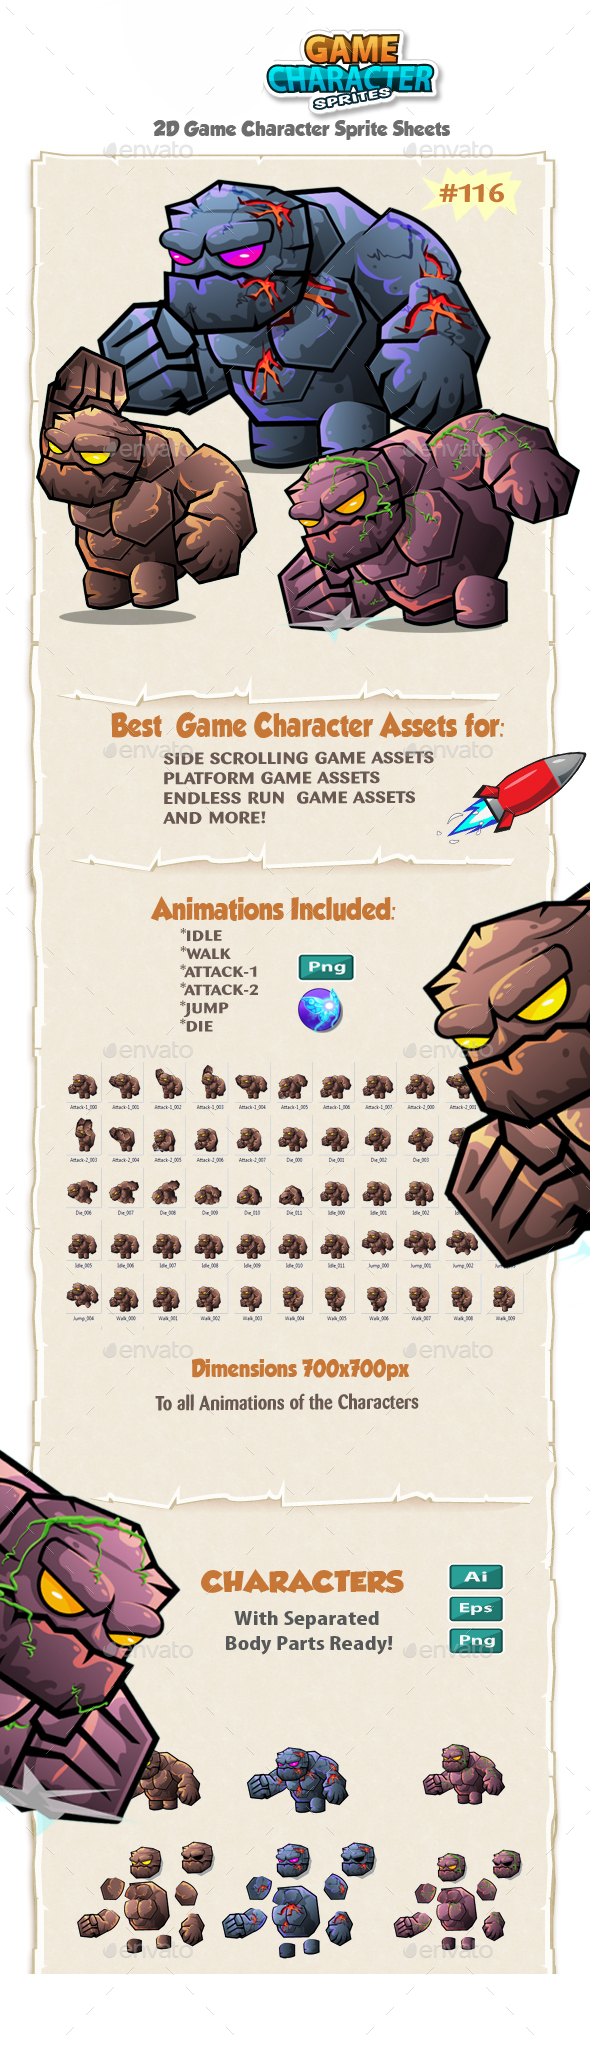 Monster Stone Giant 2D Game Character Sprites 116 - Sprites Game Assets